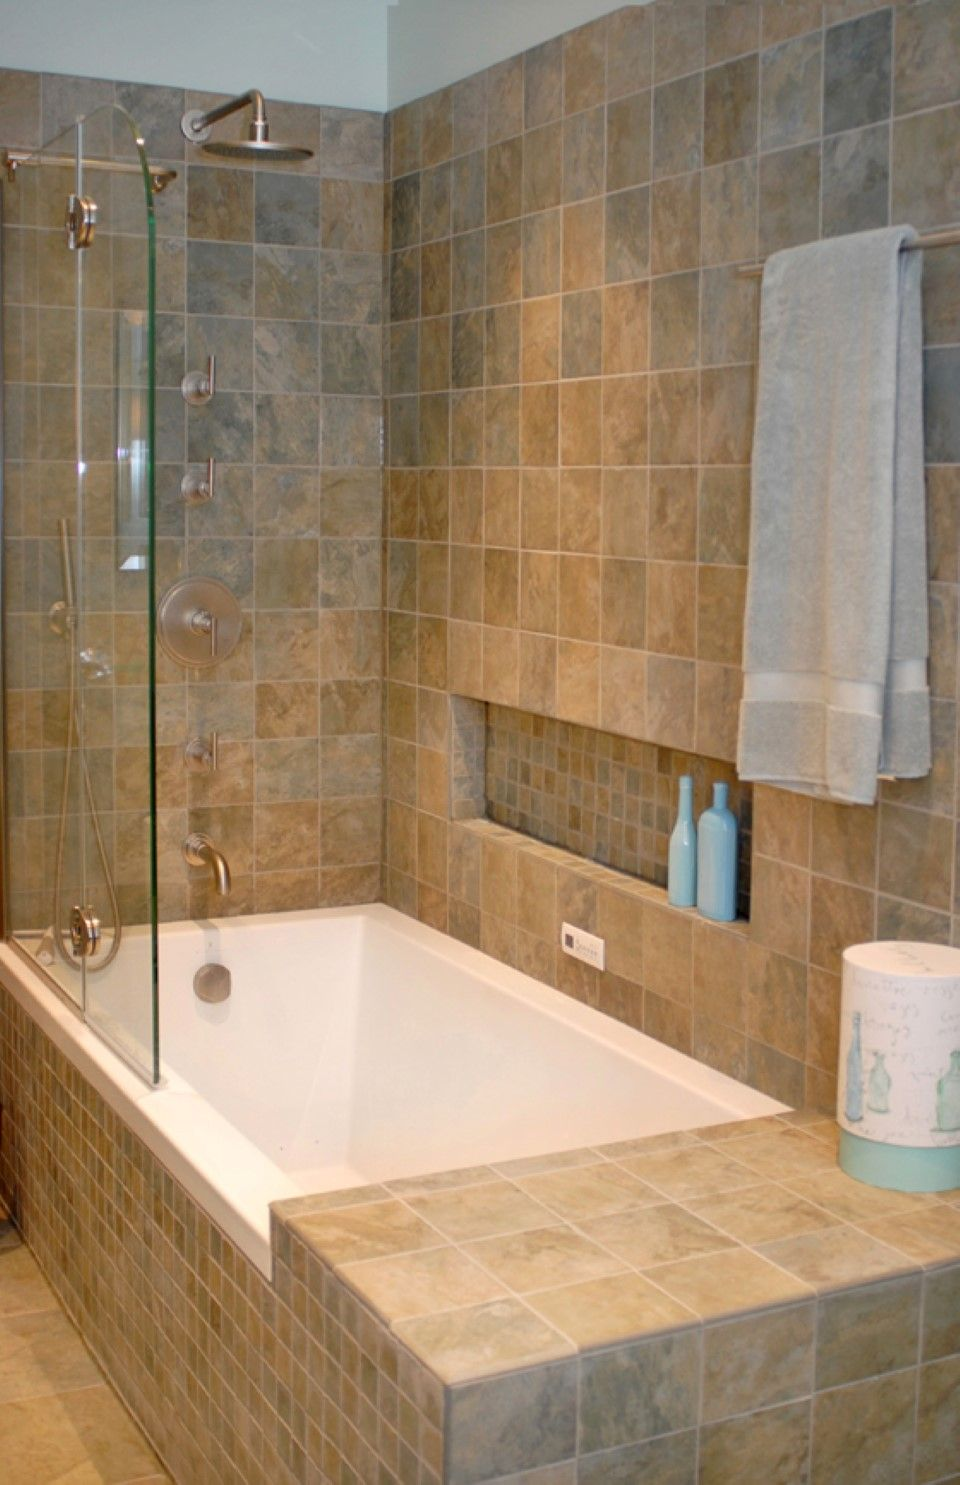 Bathroom Tiles Horizontal modern tub shower combinations: traditional bathroom tile idea and